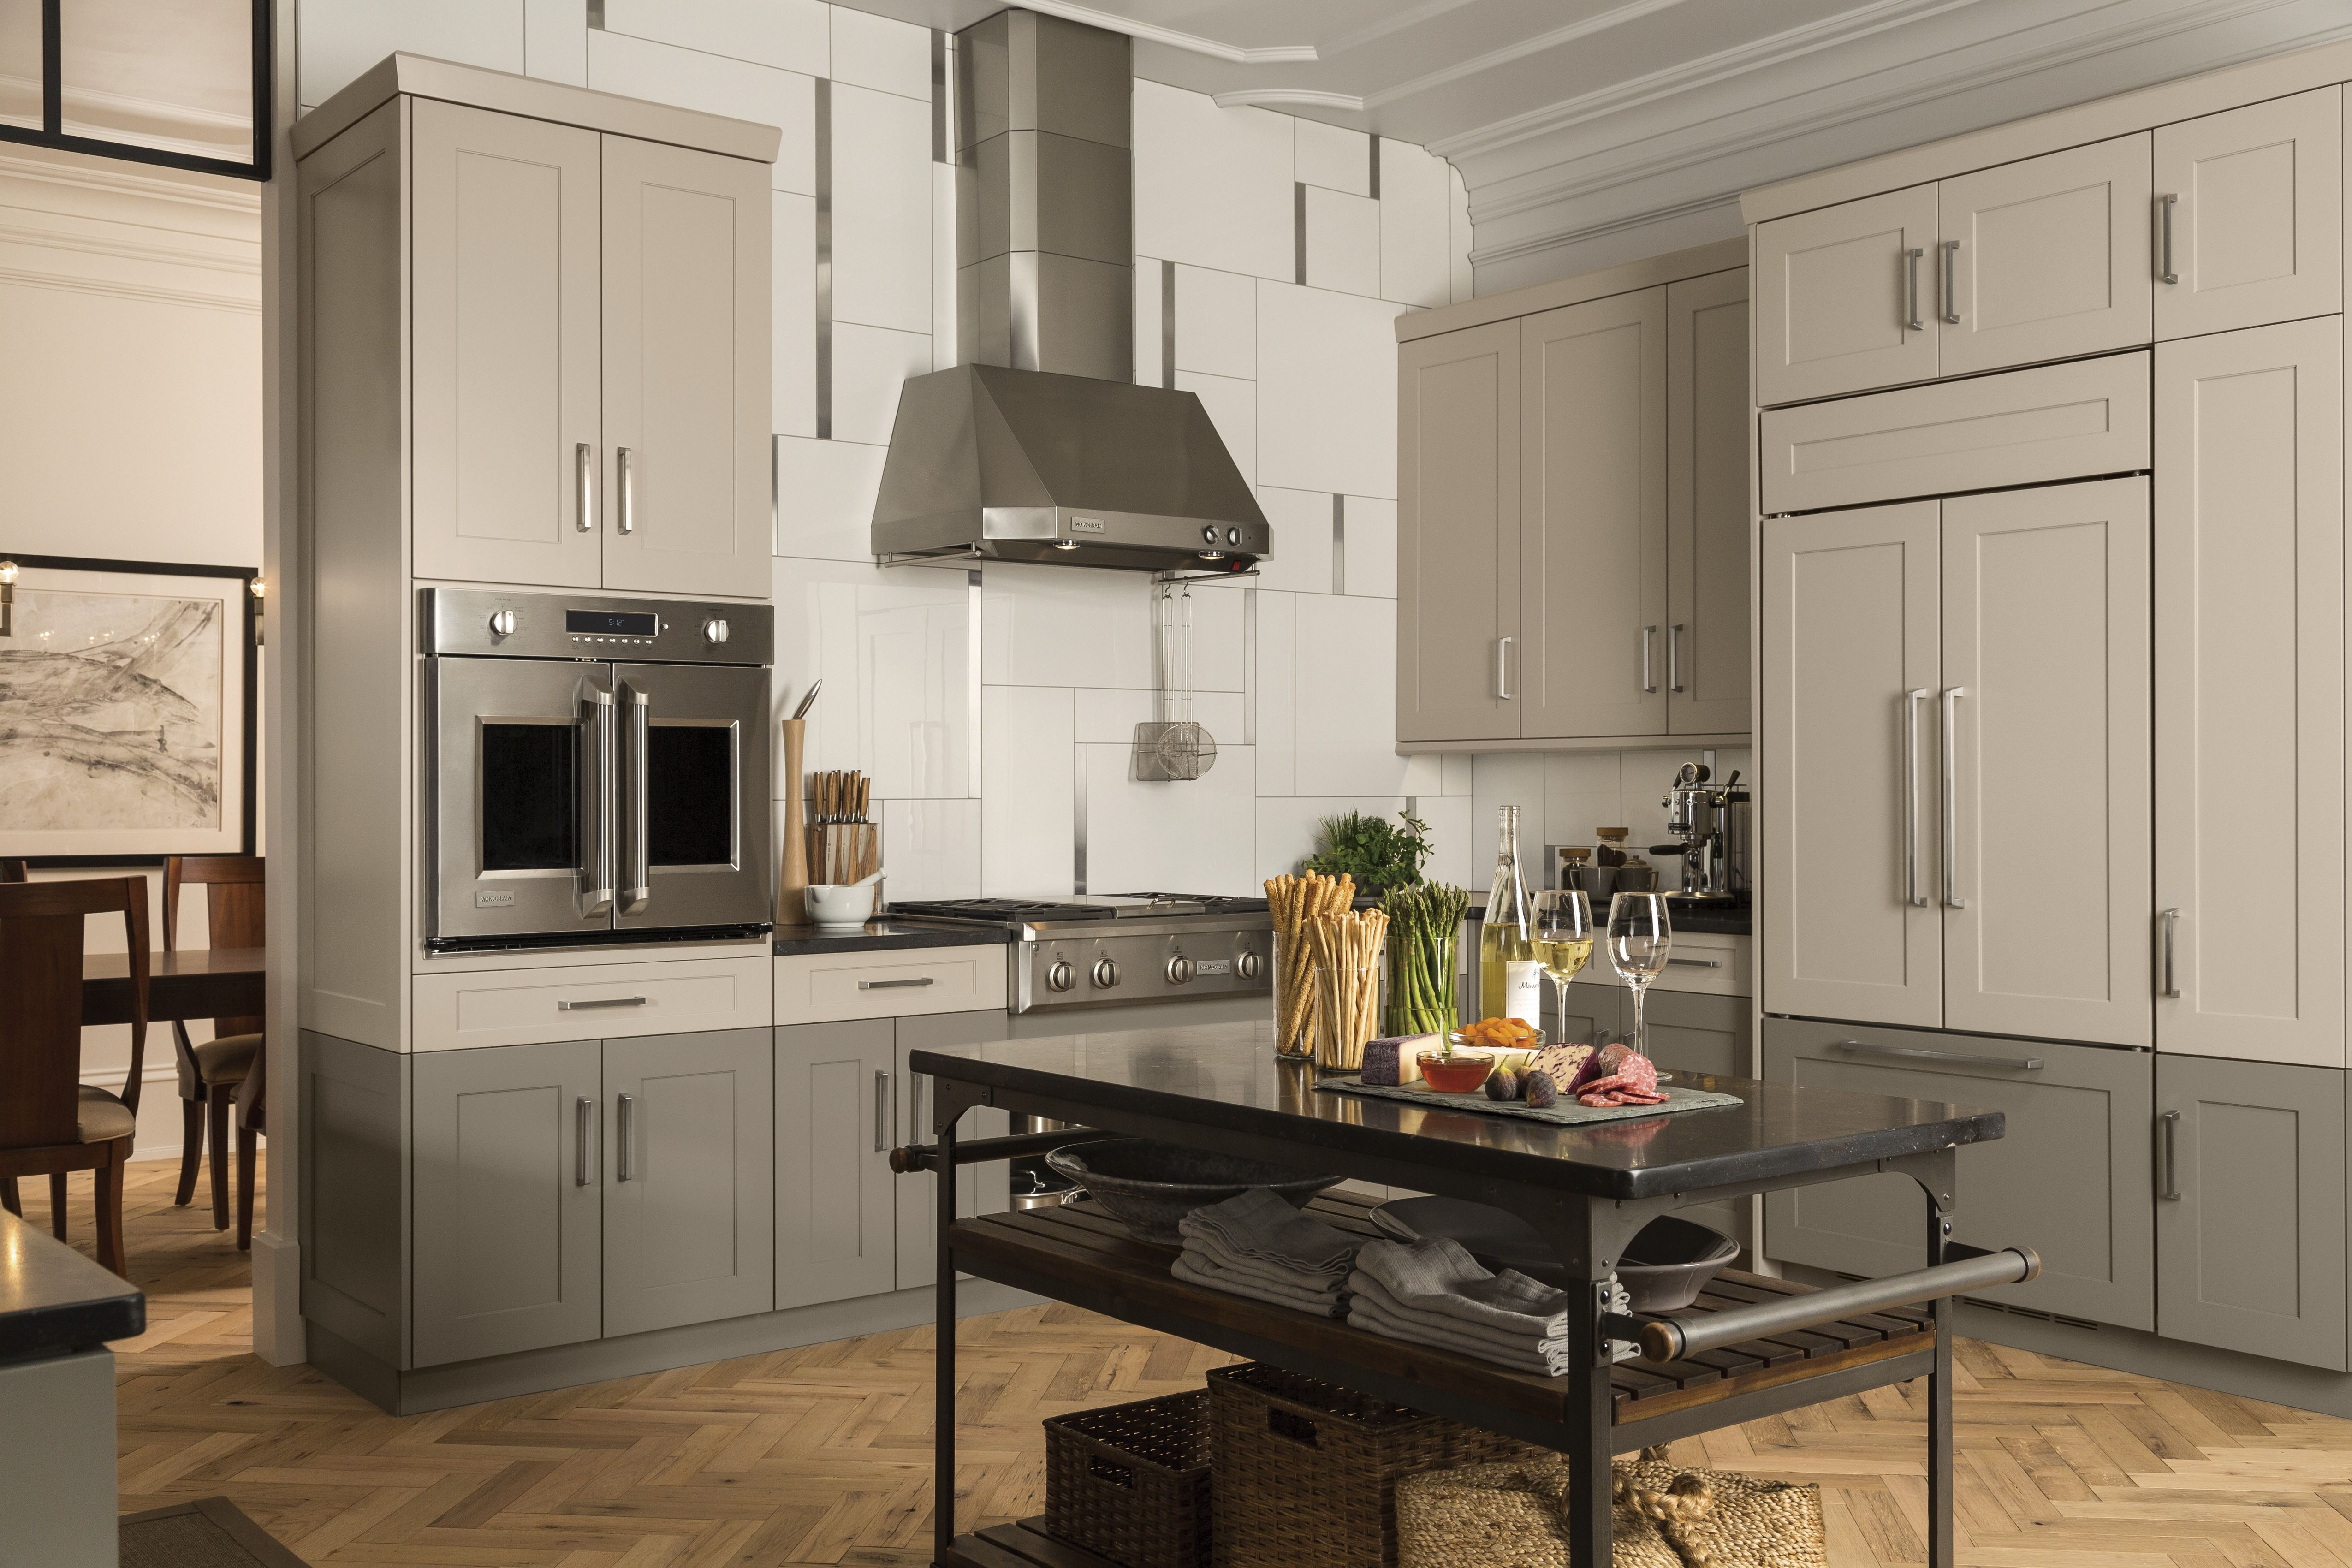 Elevate the look of your kitchen with MONOGRAM appliances